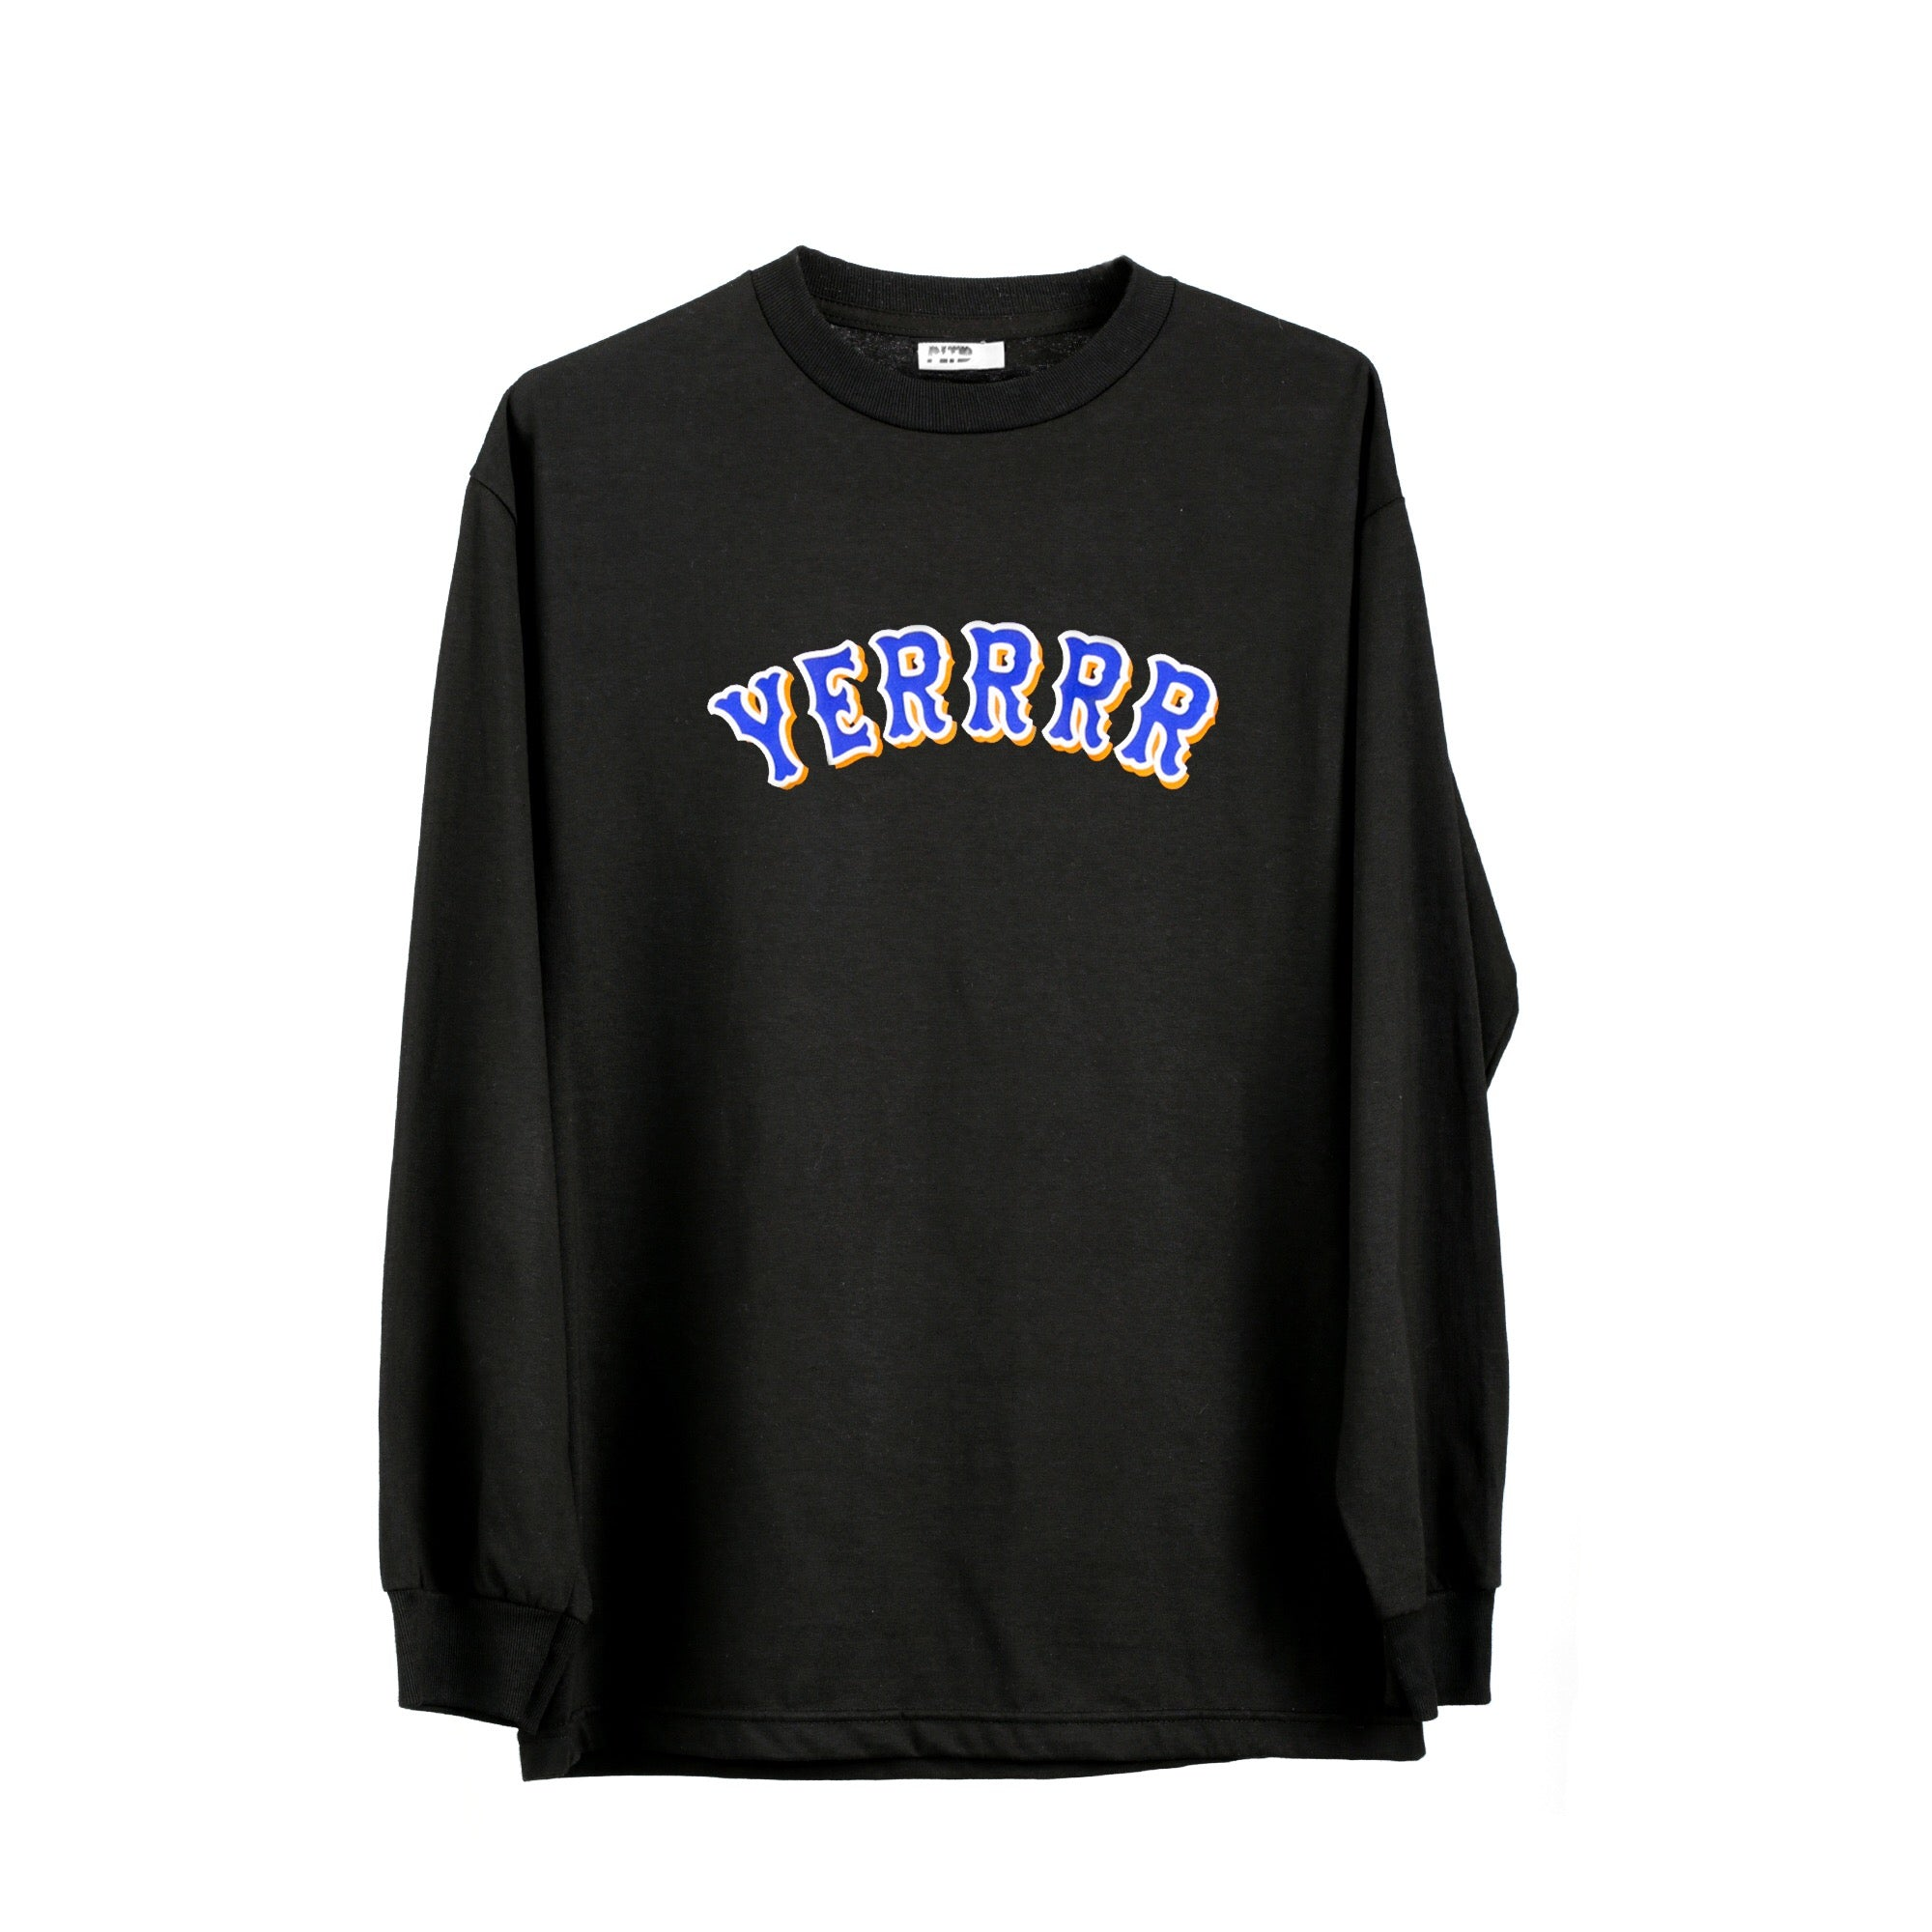 Yerrrr - Mets Alternative Black L/S